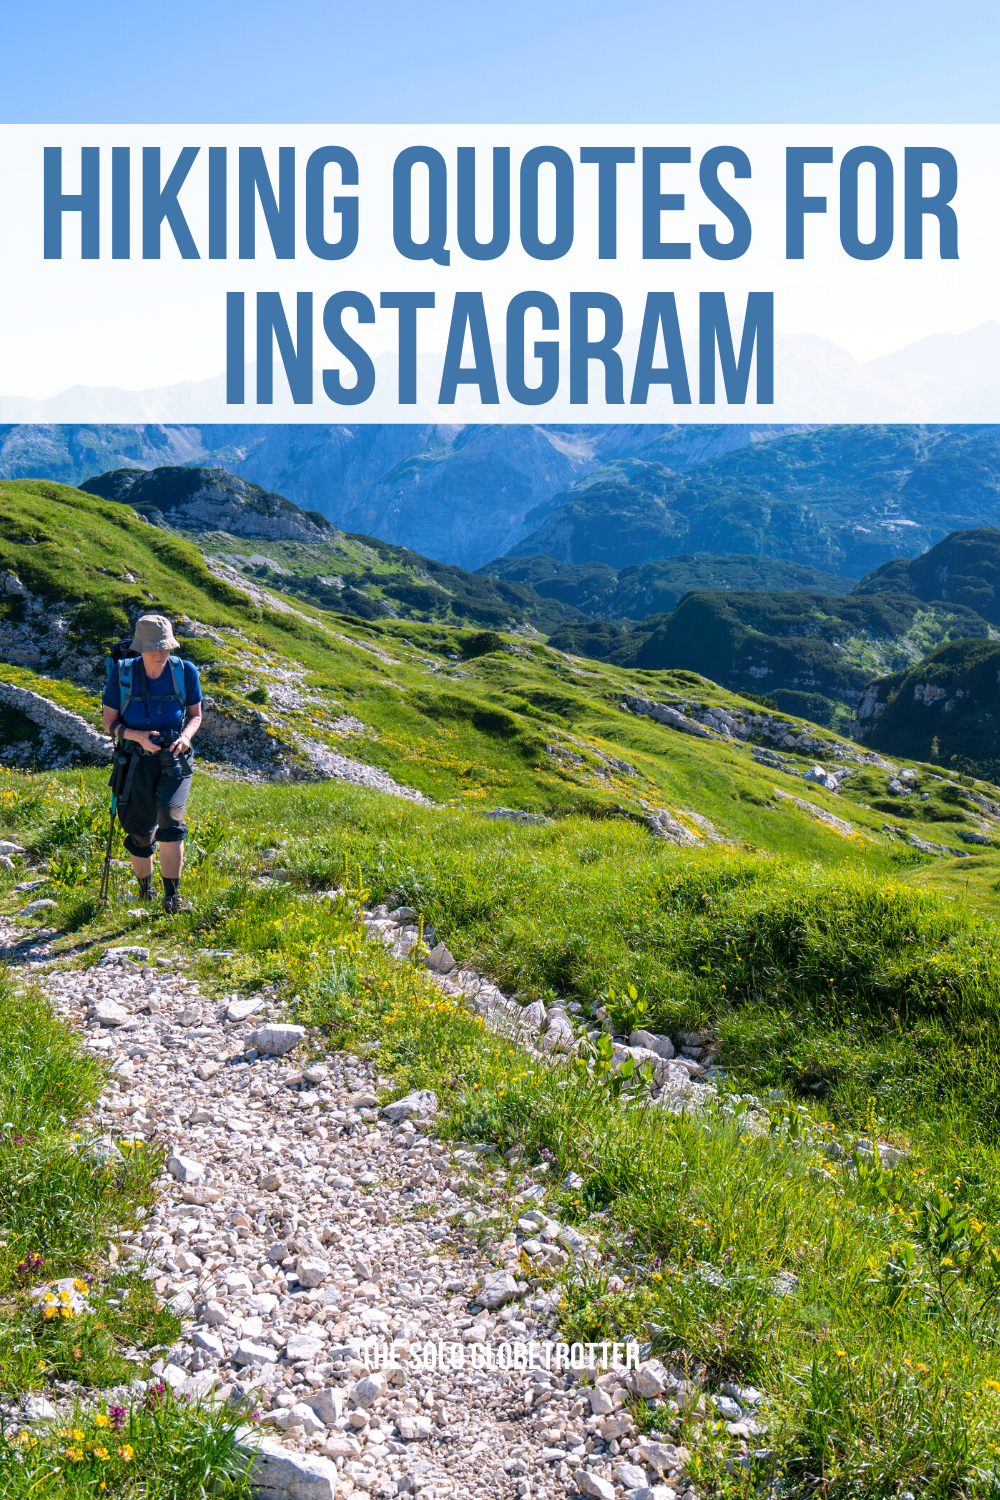 201 Truly Inspiring Hiking Quotes To Make You Pack Bags To Mountains In 2021 Caption For Friends Hiking Quotes Instagram Captions